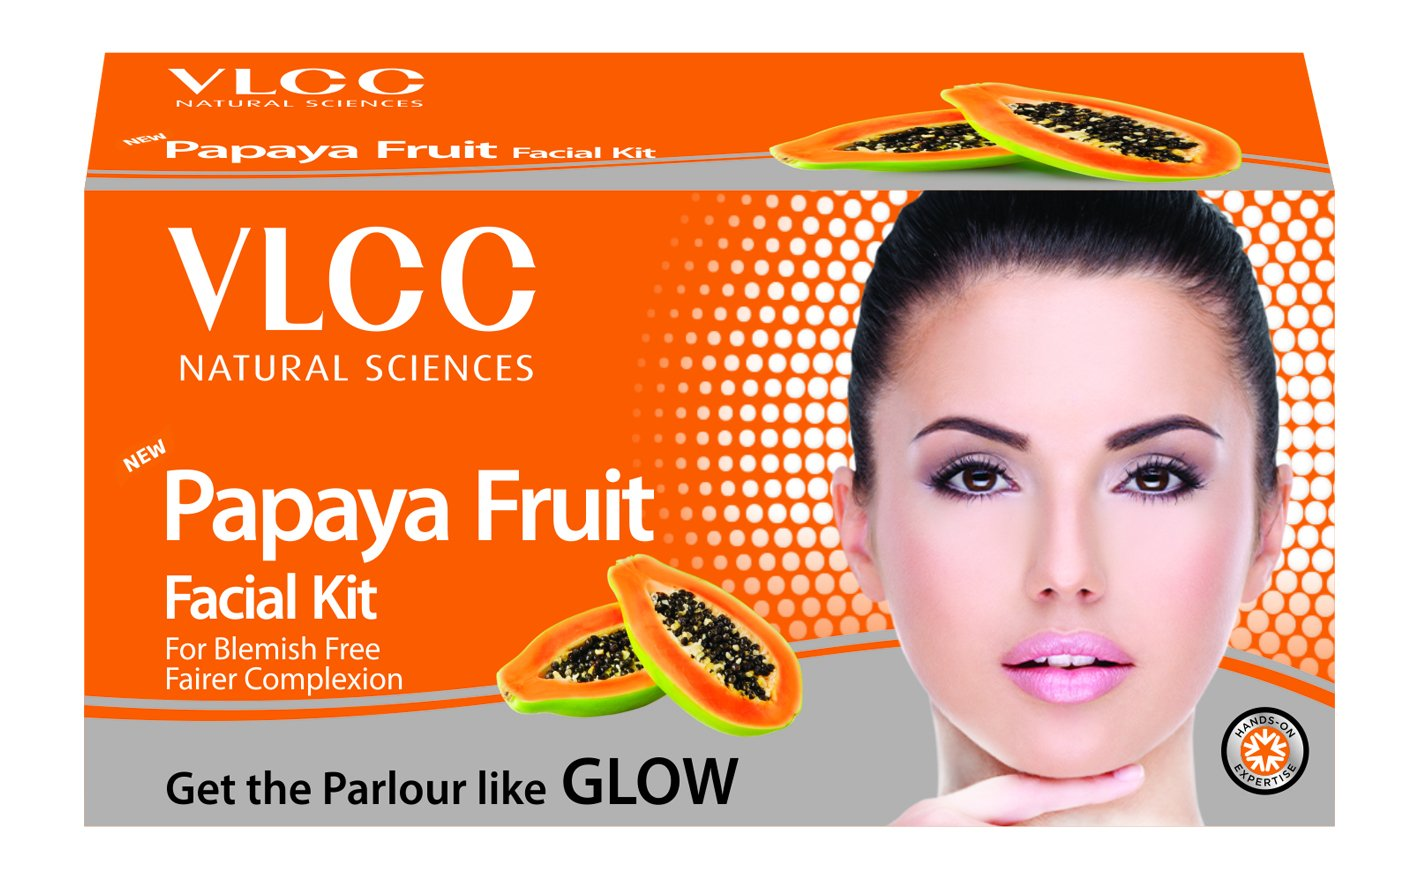 VLCC Papaya Fruit Facial Kit, 60g product image